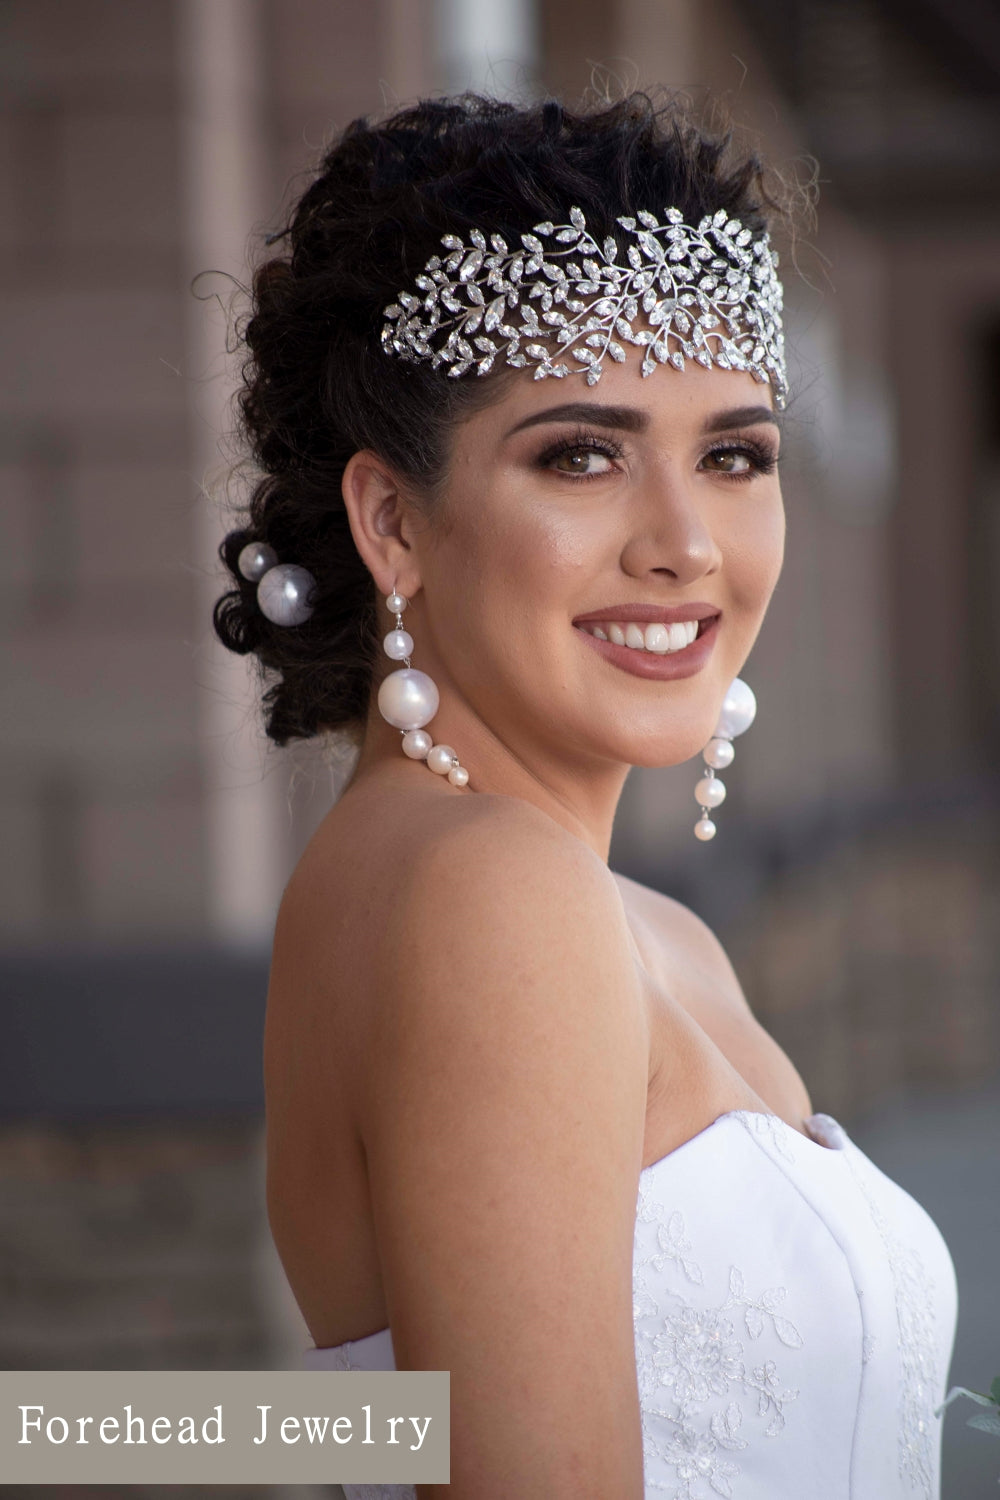 Best Wedding Forehead Jewelry - Ellee Couture Boutique